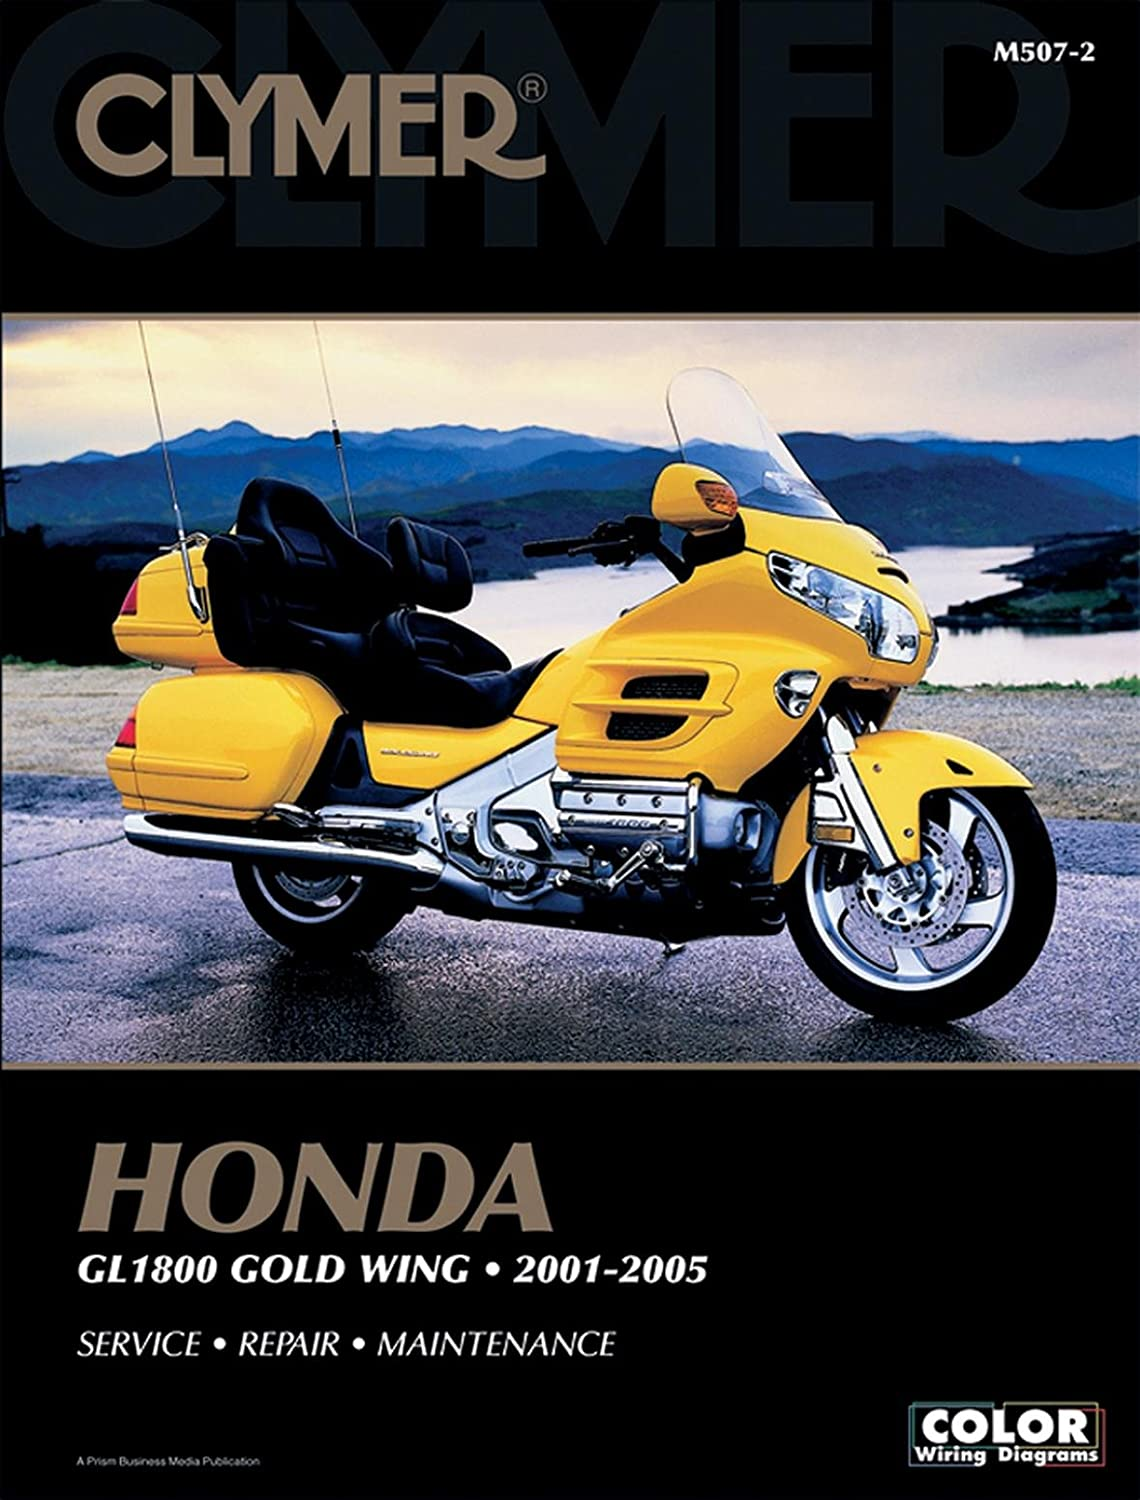 Amazon.com: Clymer Honda GL1800 Gold Wing 2001-2010 Motorcycle Repair Manual/Guide:  Automotive